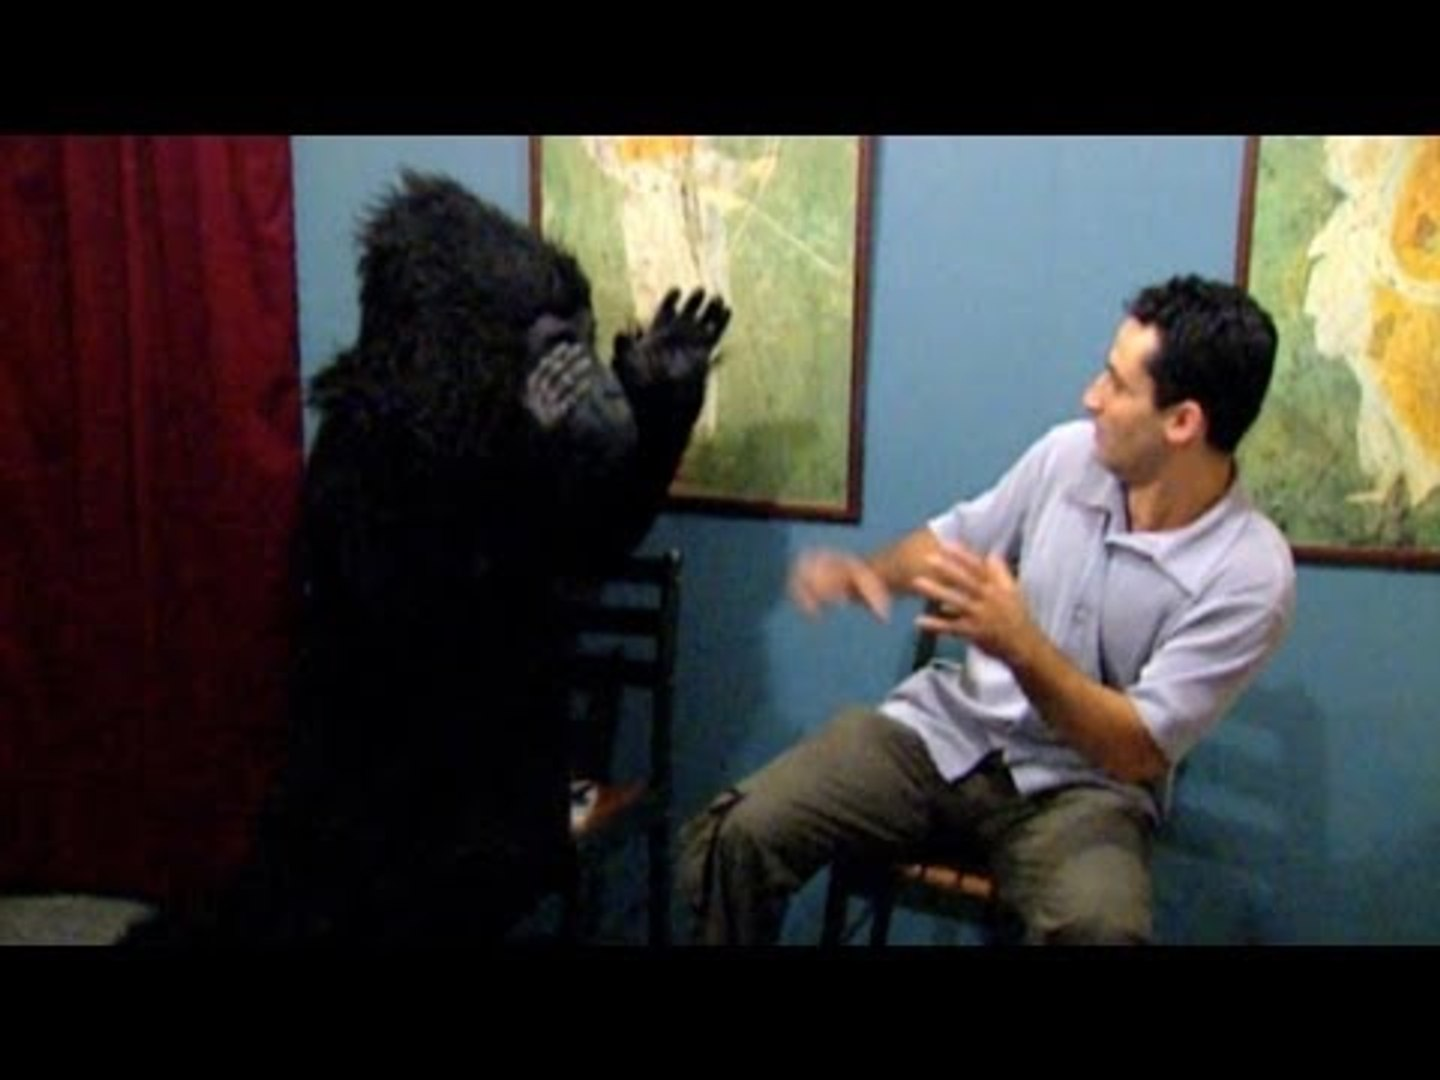 Waiting Room Pranks - Best of Just For Laughs Gags